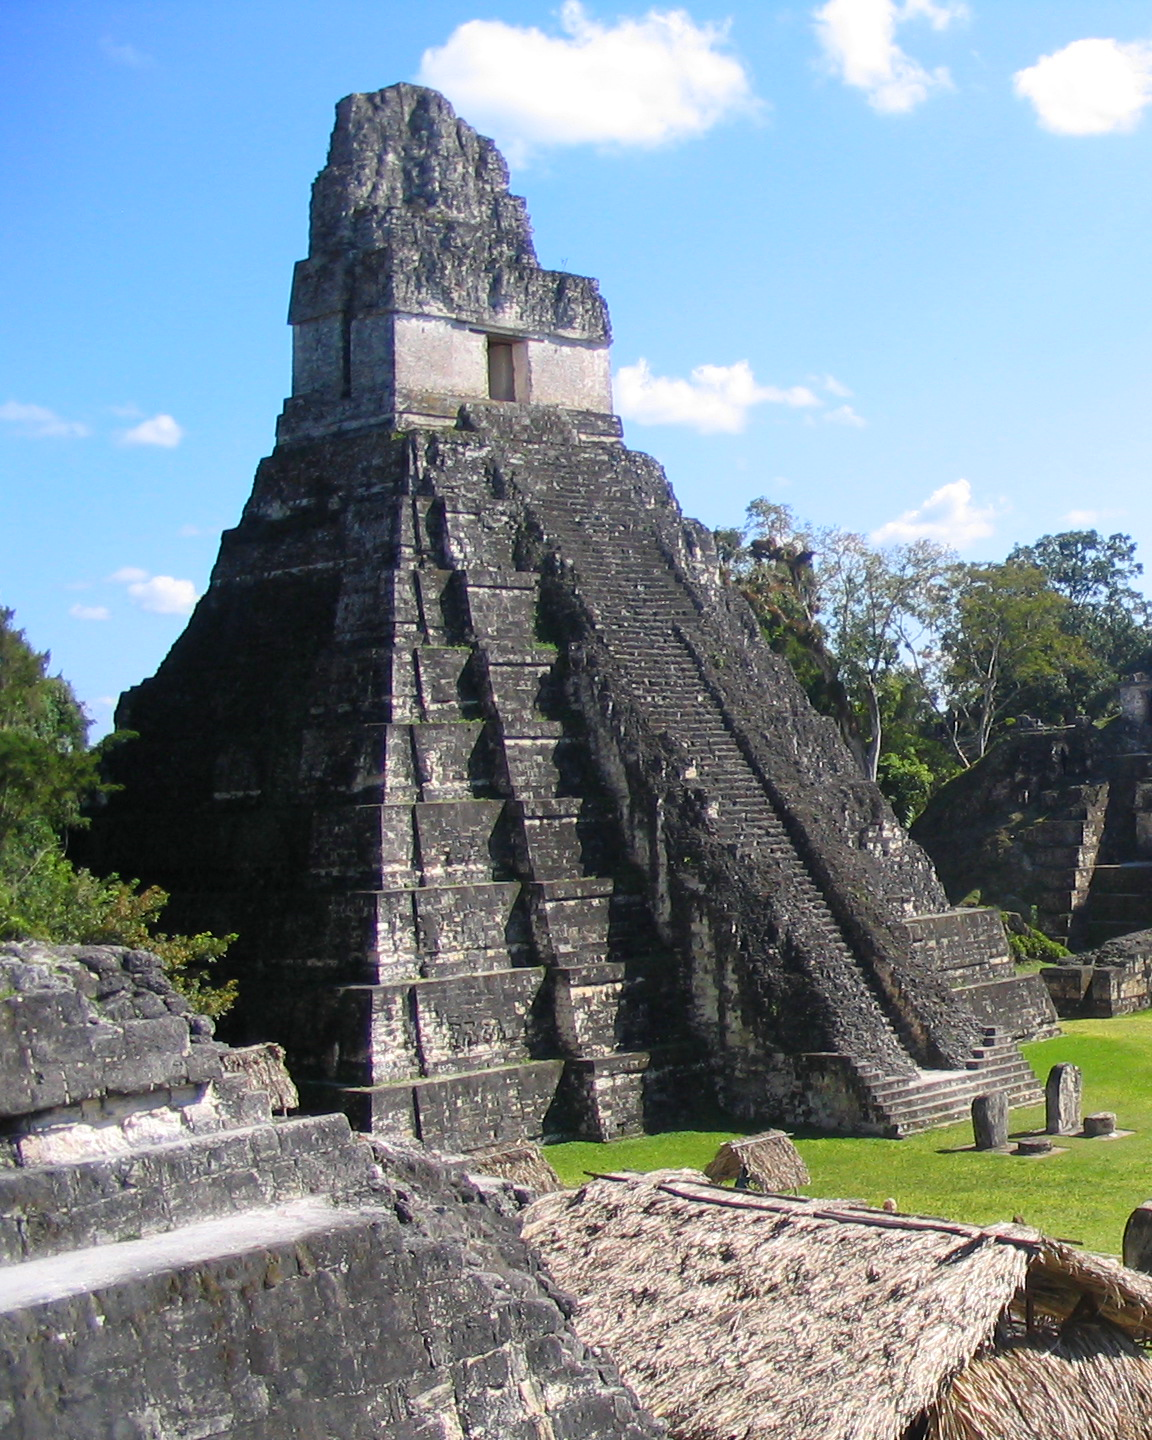 The Temple of the Great Jaguar, also known as Temple One, towers above the Central Acropolis at Tikal.